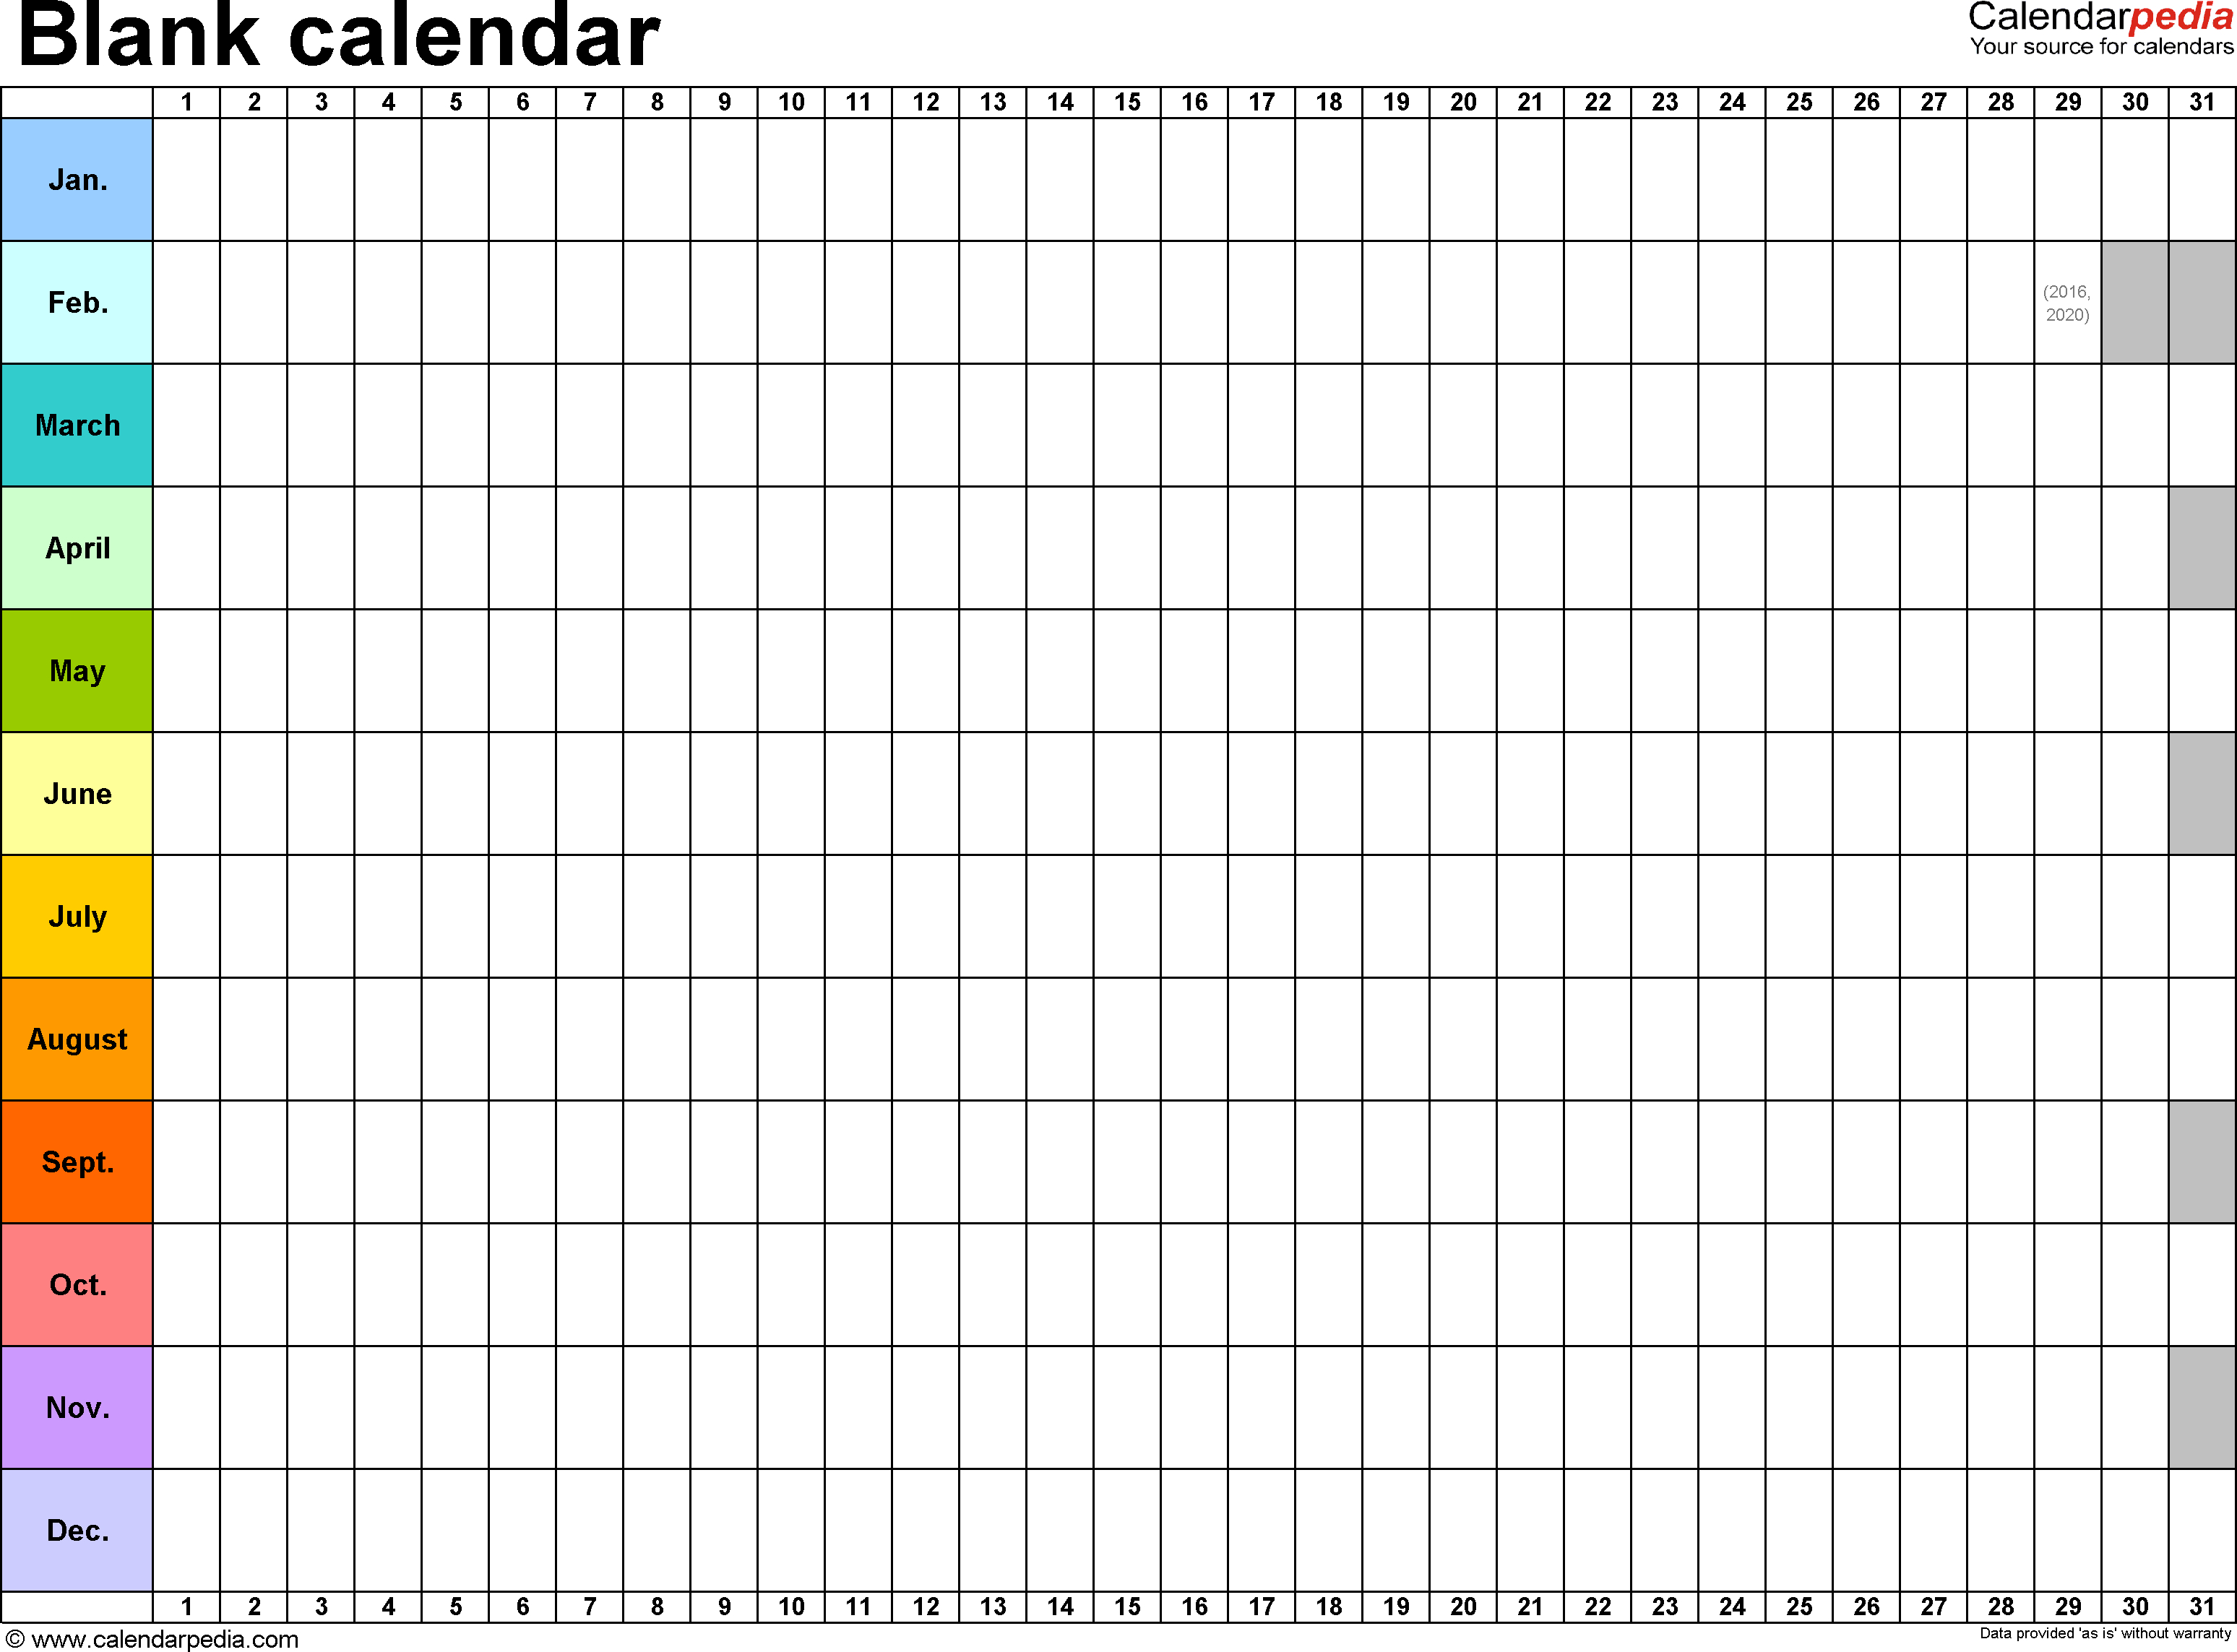 Blank Calendar - 9 Free Printable Microsoft Word Templates regarding Blank Printable Calendars Yearly